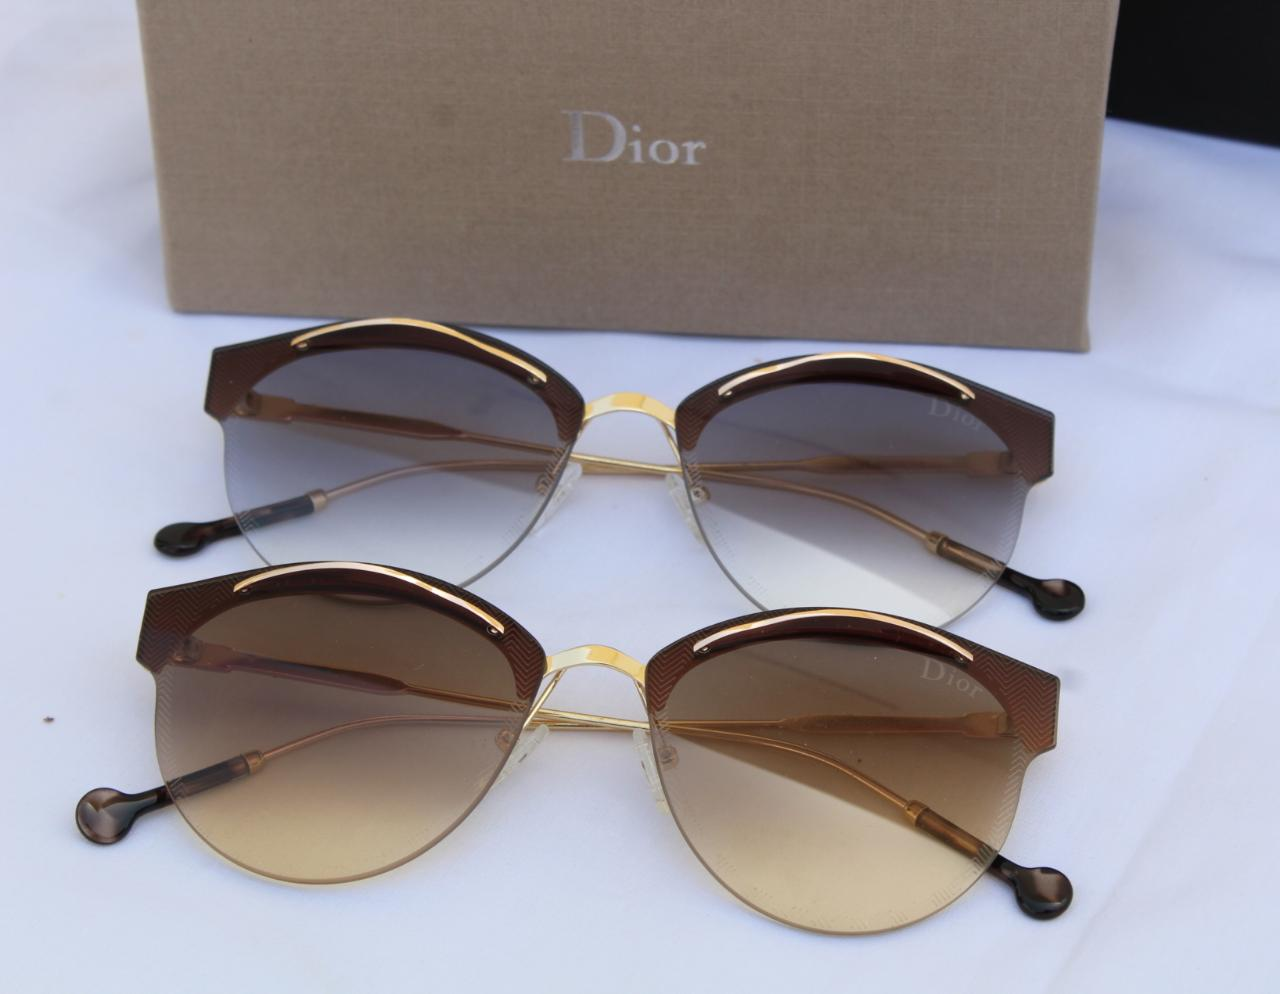 cc4fb46b2ddd Dior Sun Glasses For Women - Kalia Mart